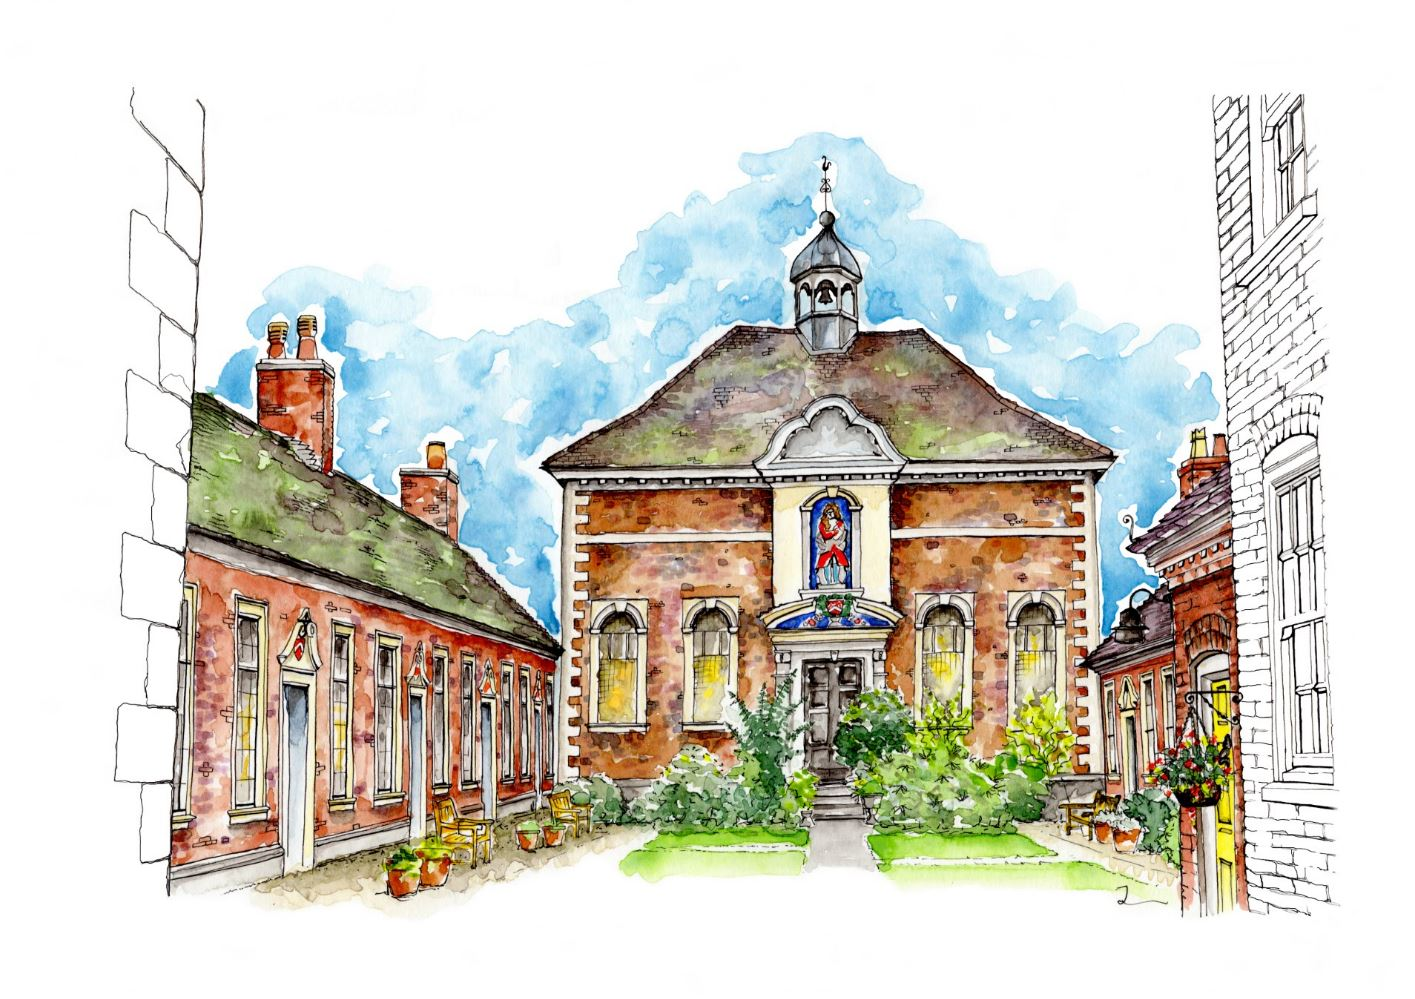 Berkeley Court Almshouses